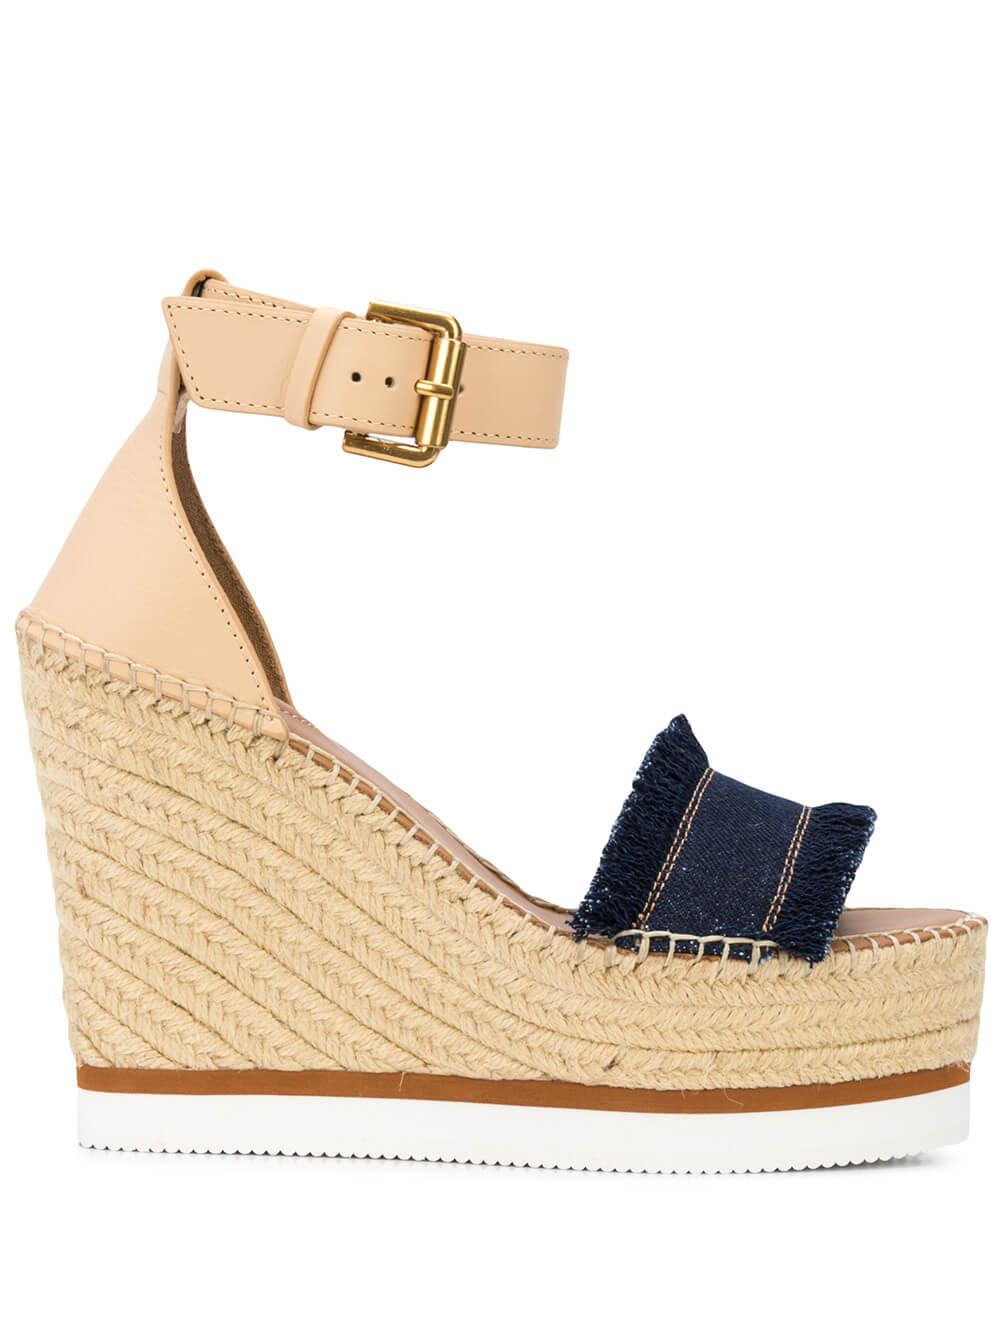 Canvas/Leather Platform Wedge With Ankle Strap Item # SB28152